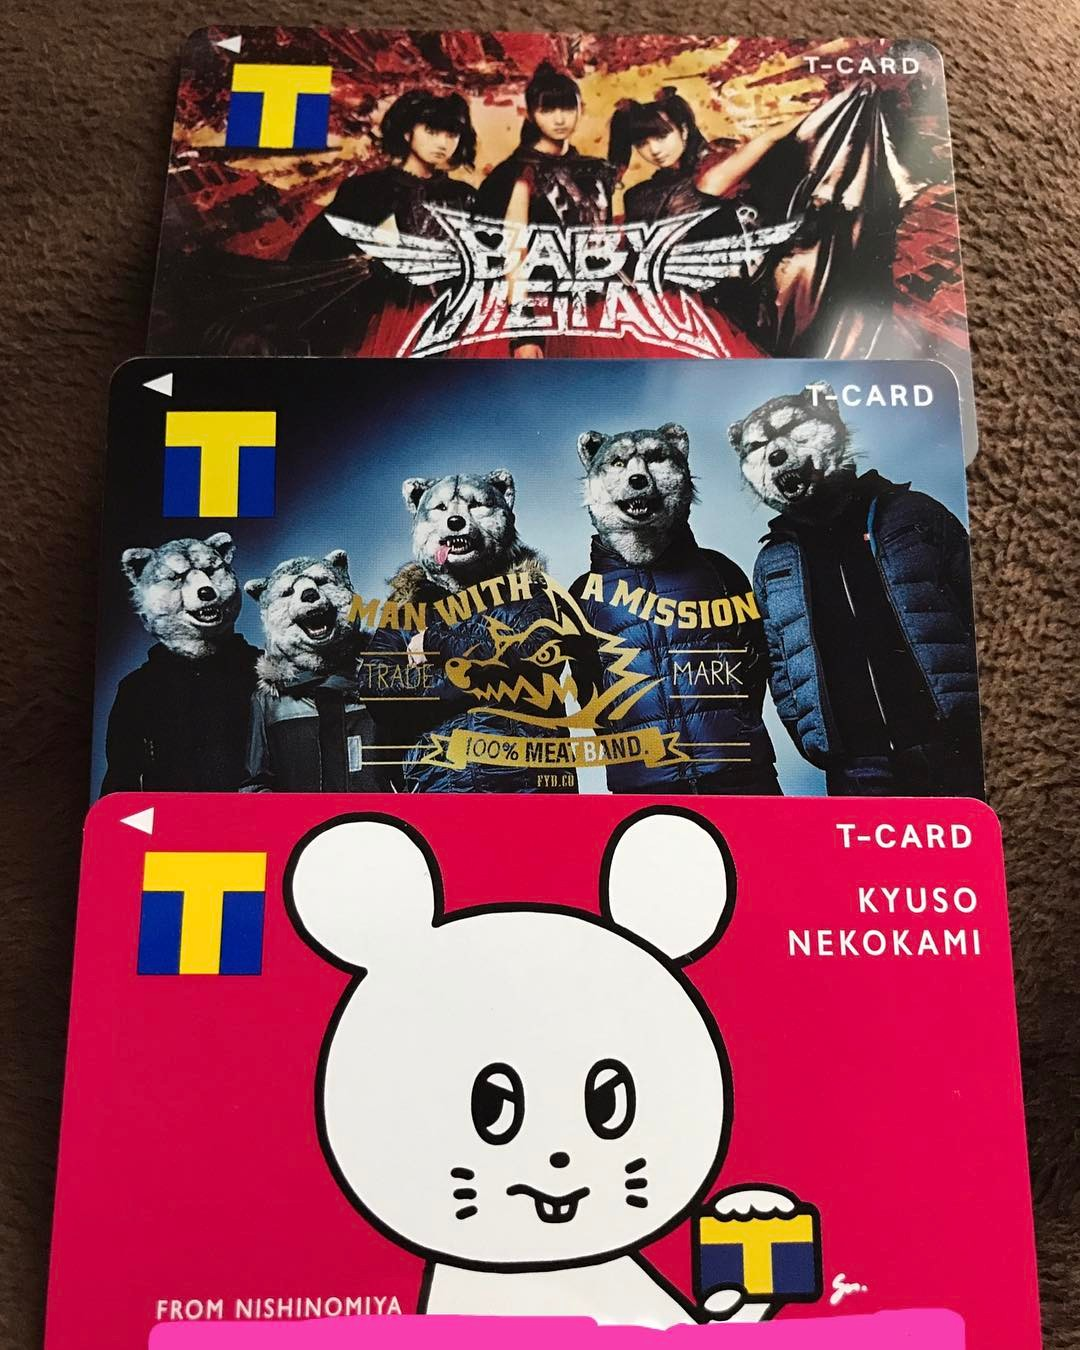 music themed t-point cards